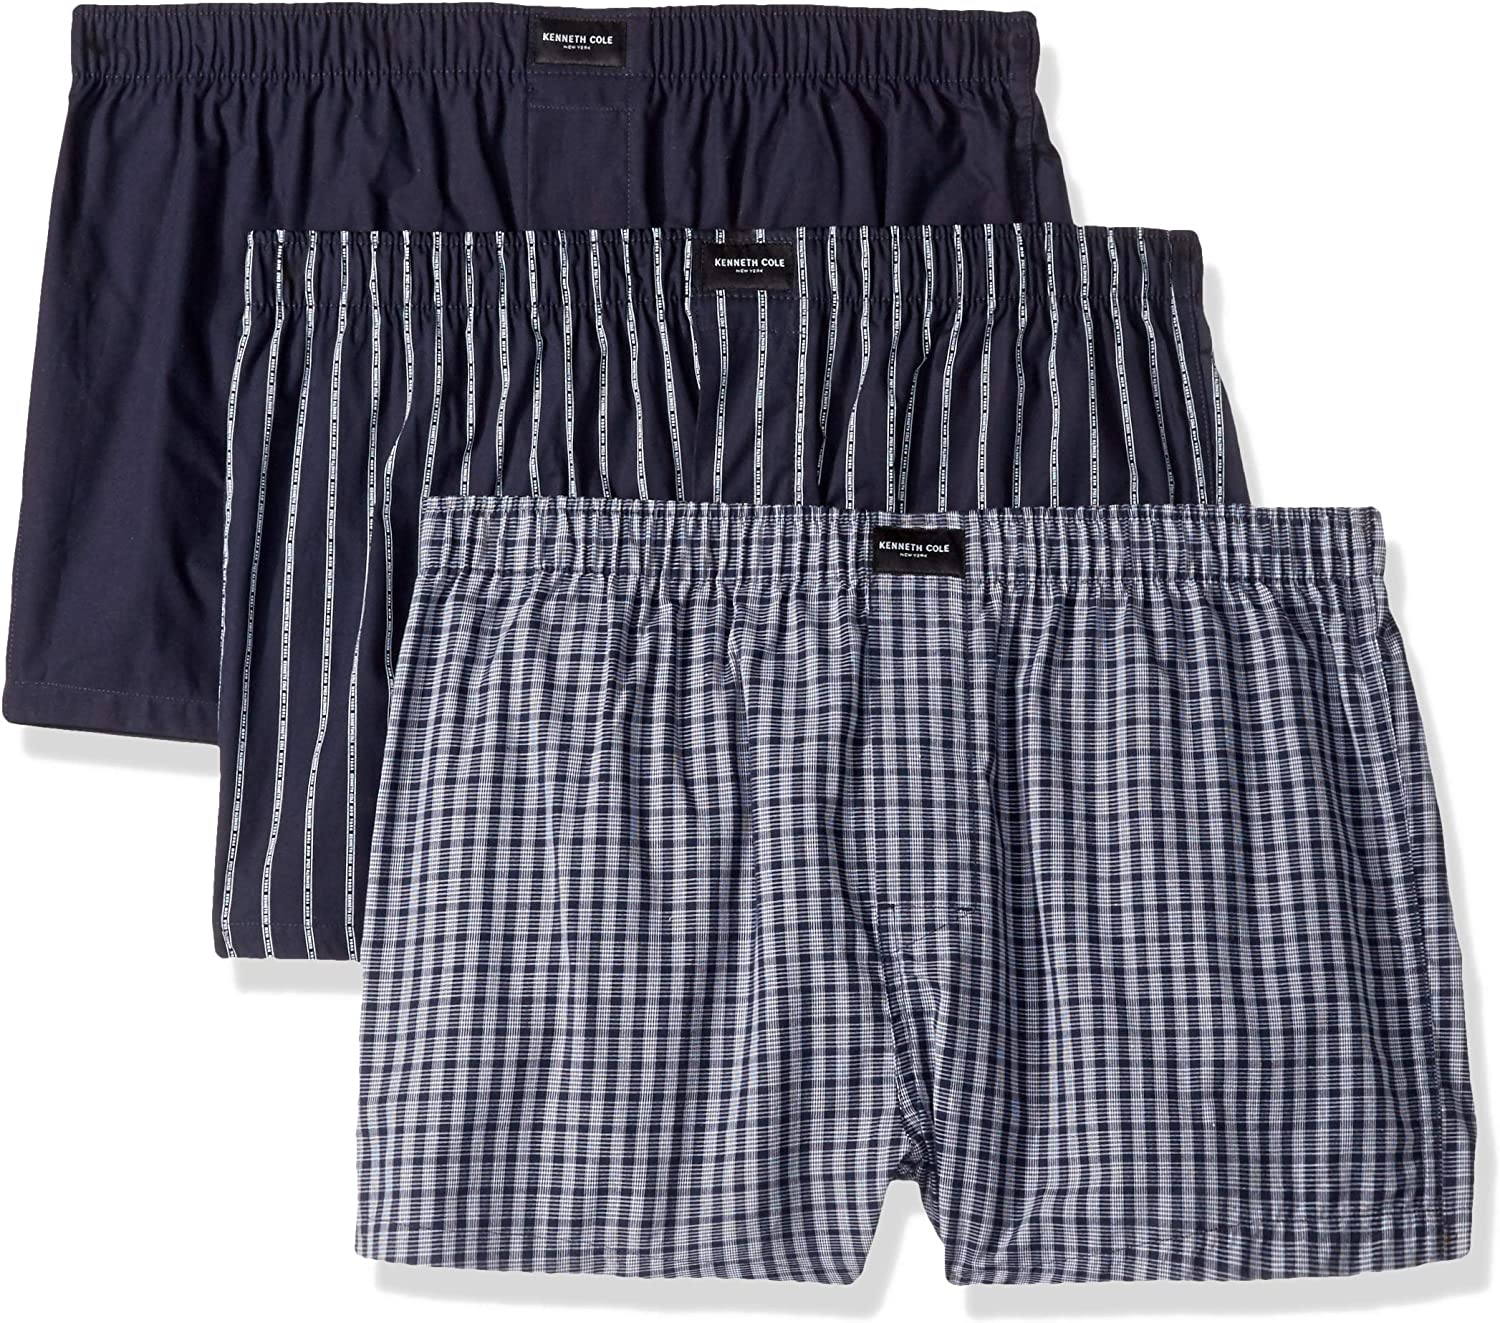 Kenneth Cole New York Men's Underwear 100% Cotton Woven Boxers, Multipack